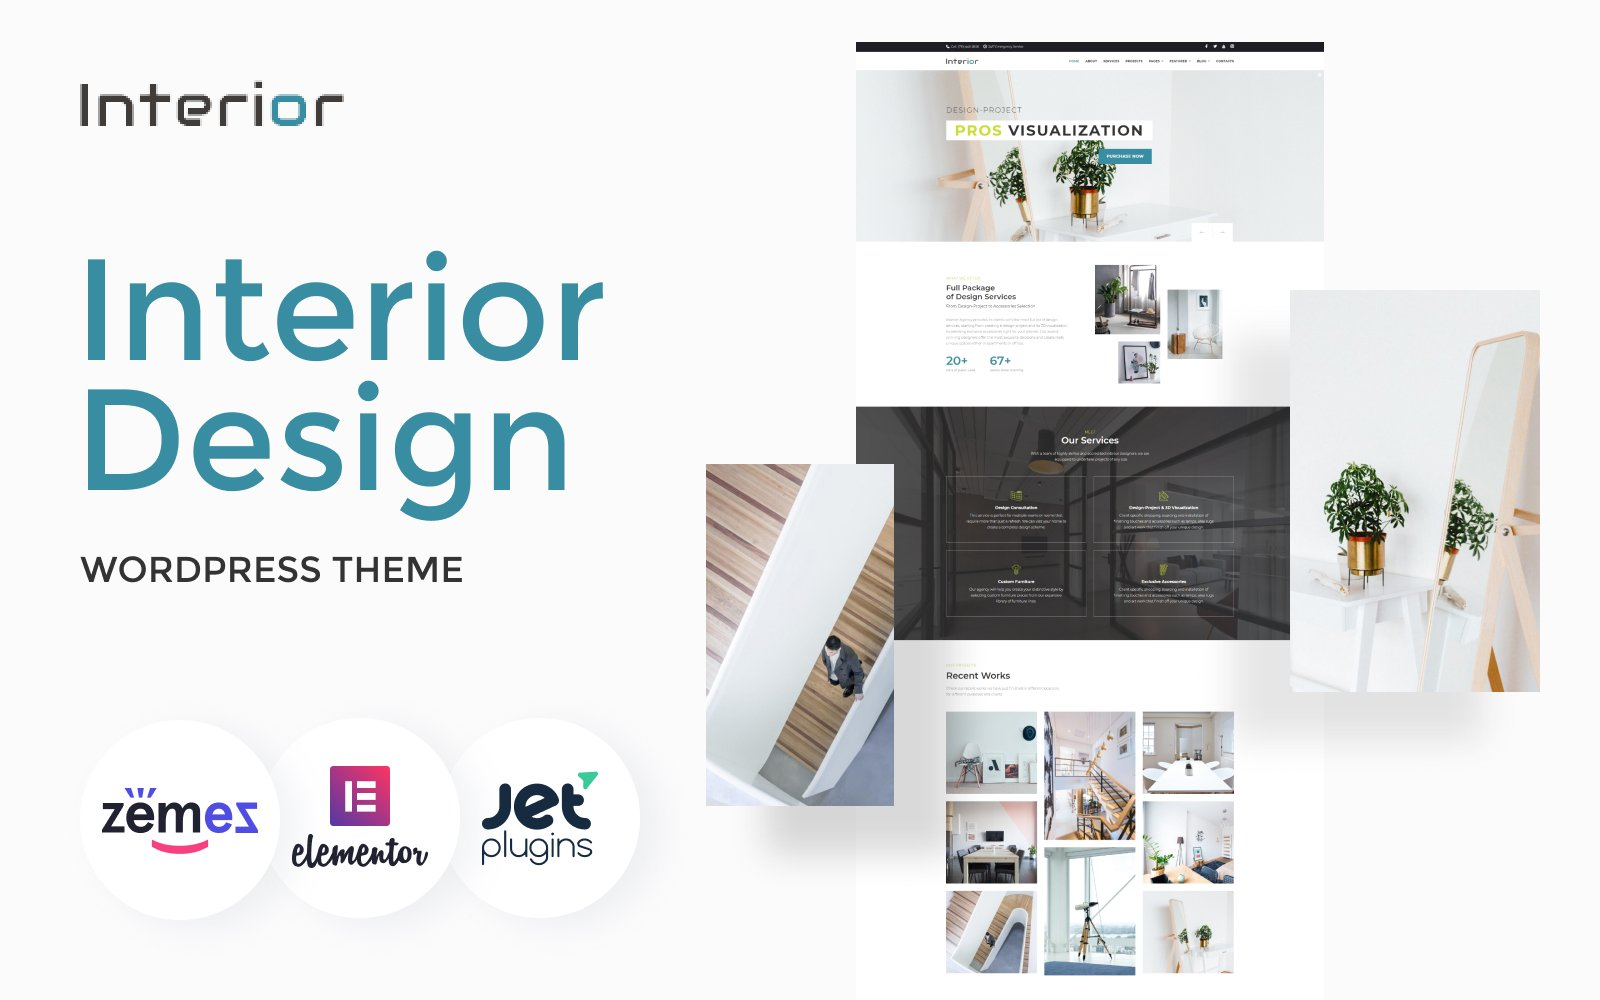 branding and interior design firms